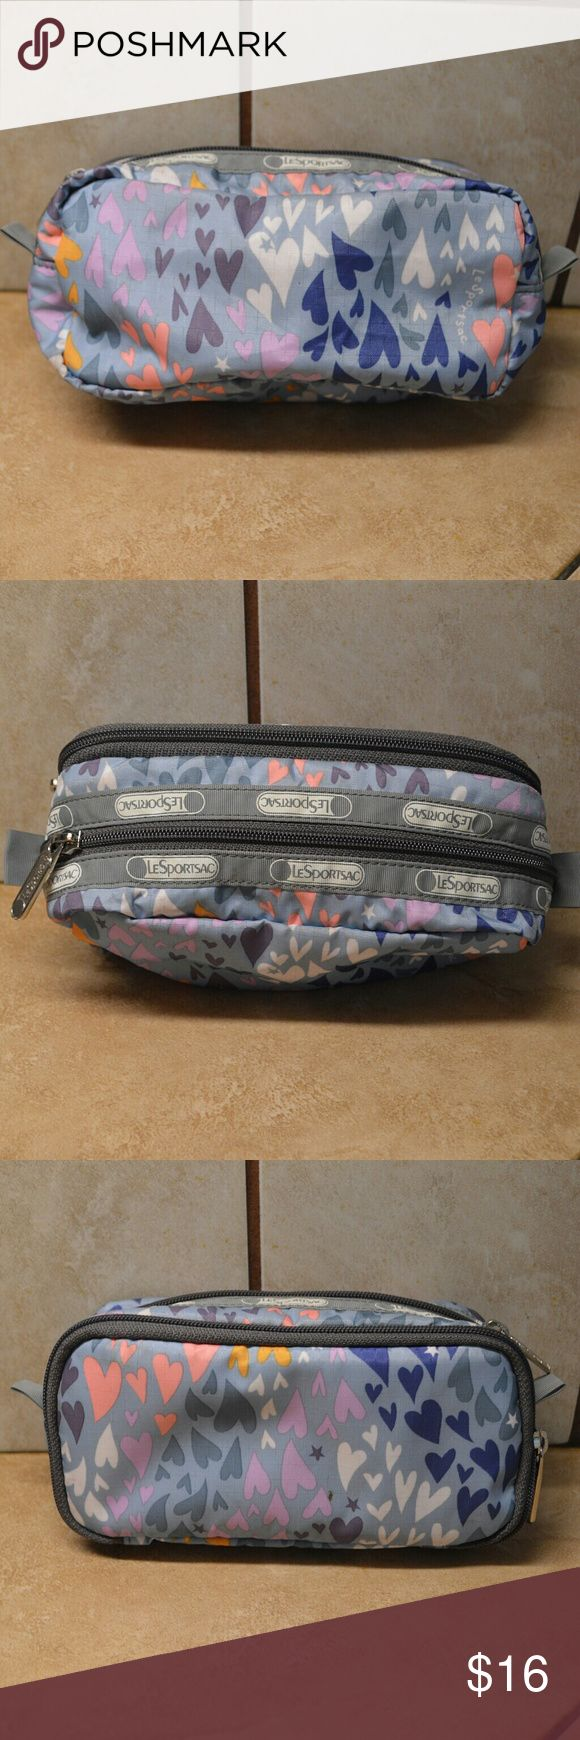 LeSportSac Pastel Hearts Makeup Bag Adorable mini Cooper zipper pouch from Le Sport Sac. Several zip compartments on this travel bag.  Great condition. LeSportsac Bags Cosmetic Bags & Cases